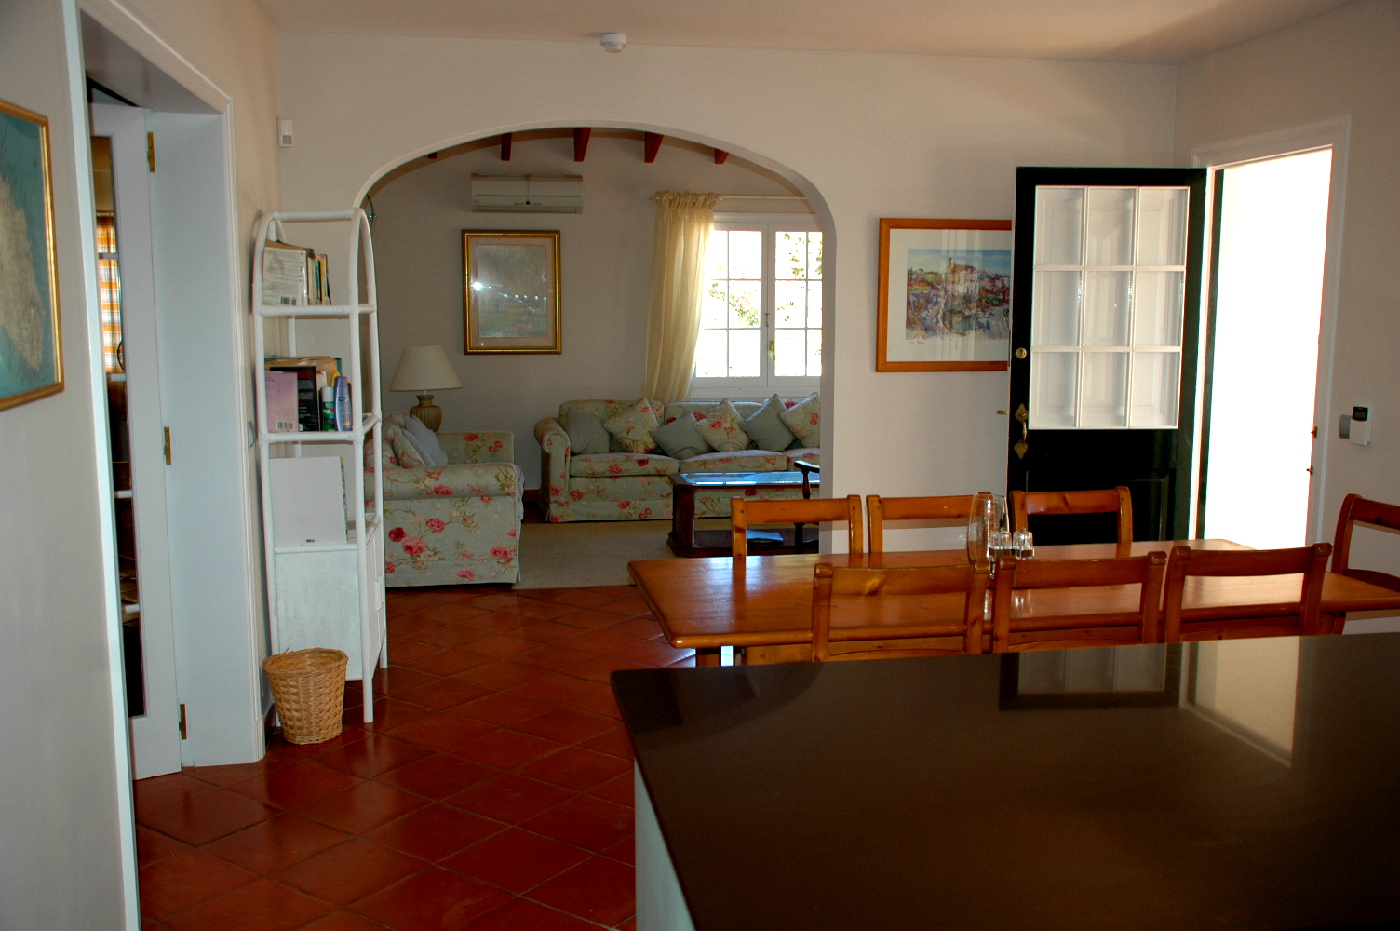 menorca-kitchen-dining-room2